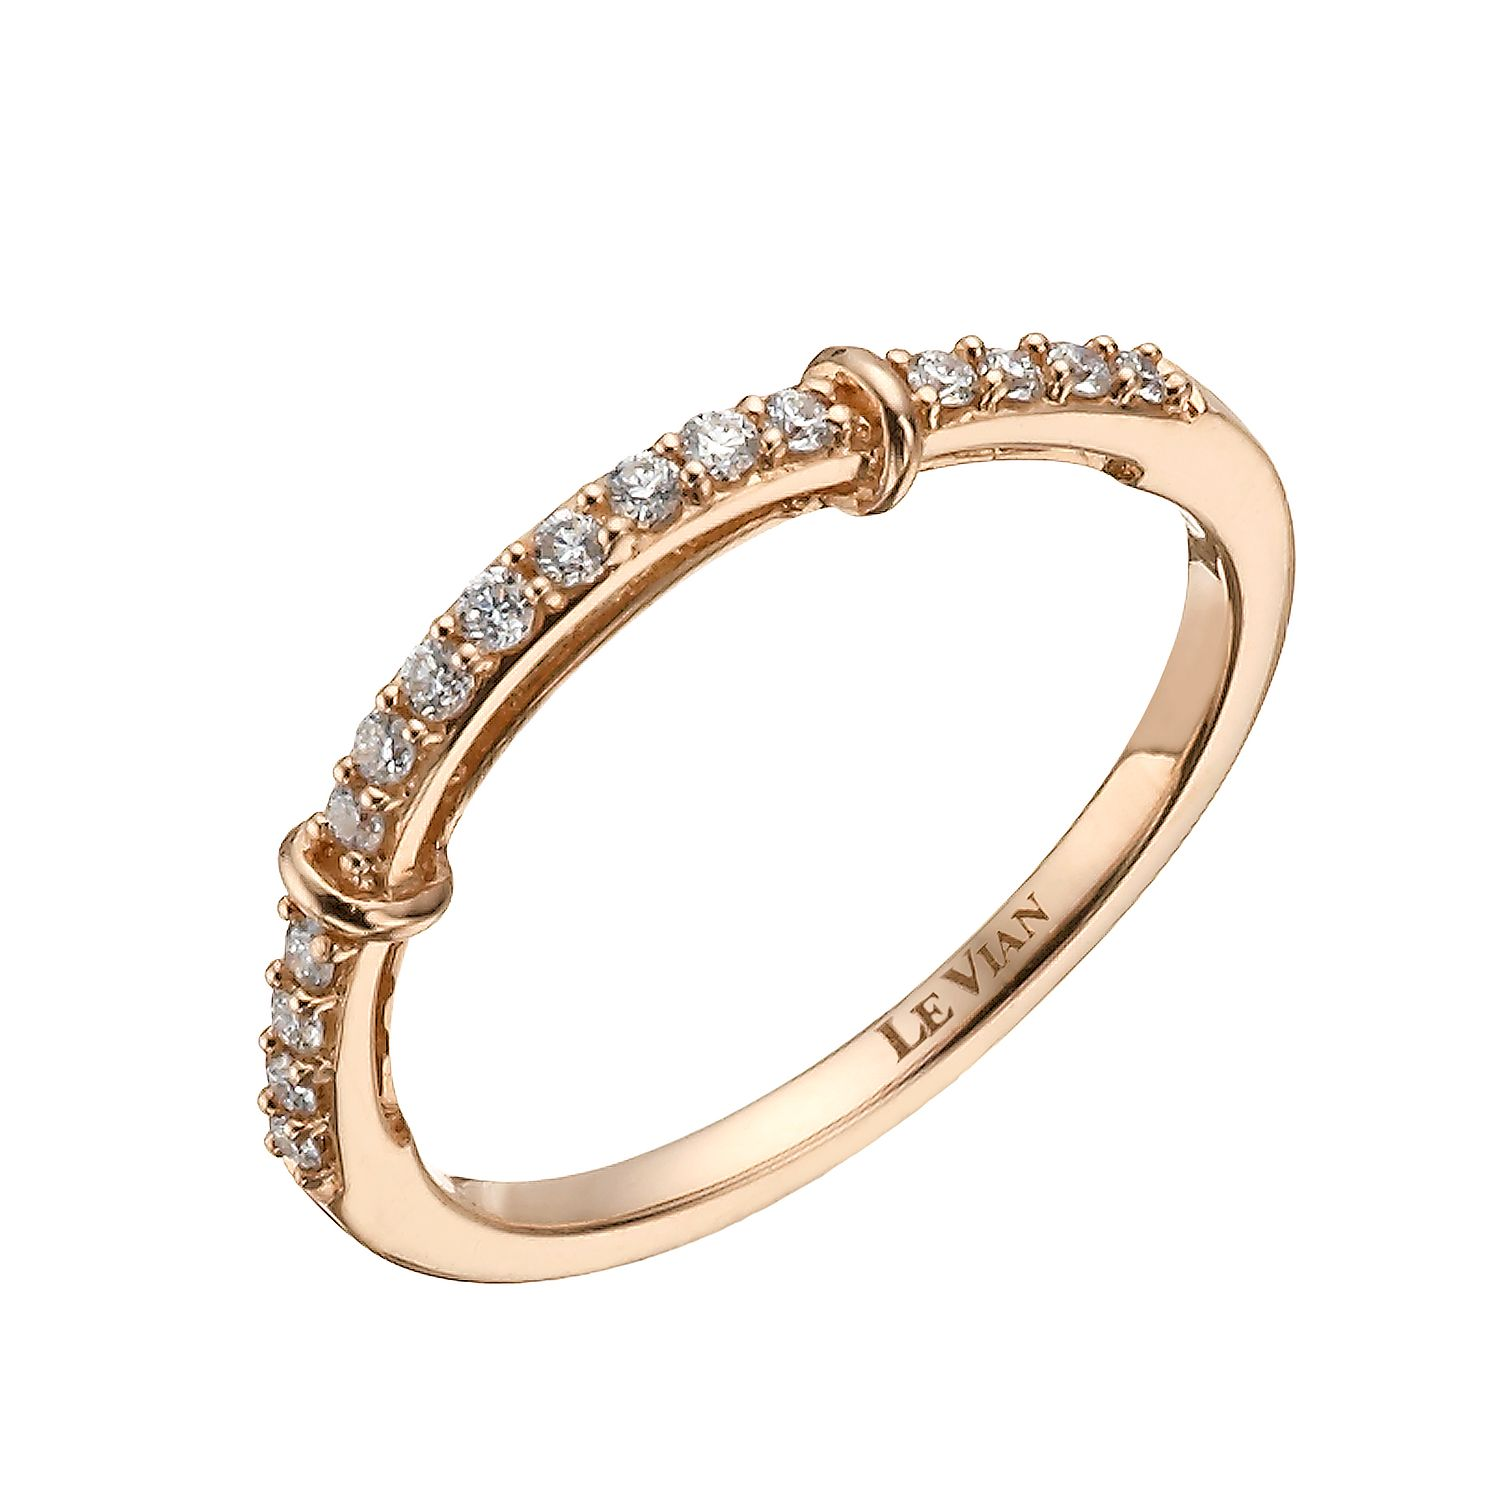 Le Vian 14ct Strawberry Gold 0.15ct Diamond Wedding Band - Product number 1460587